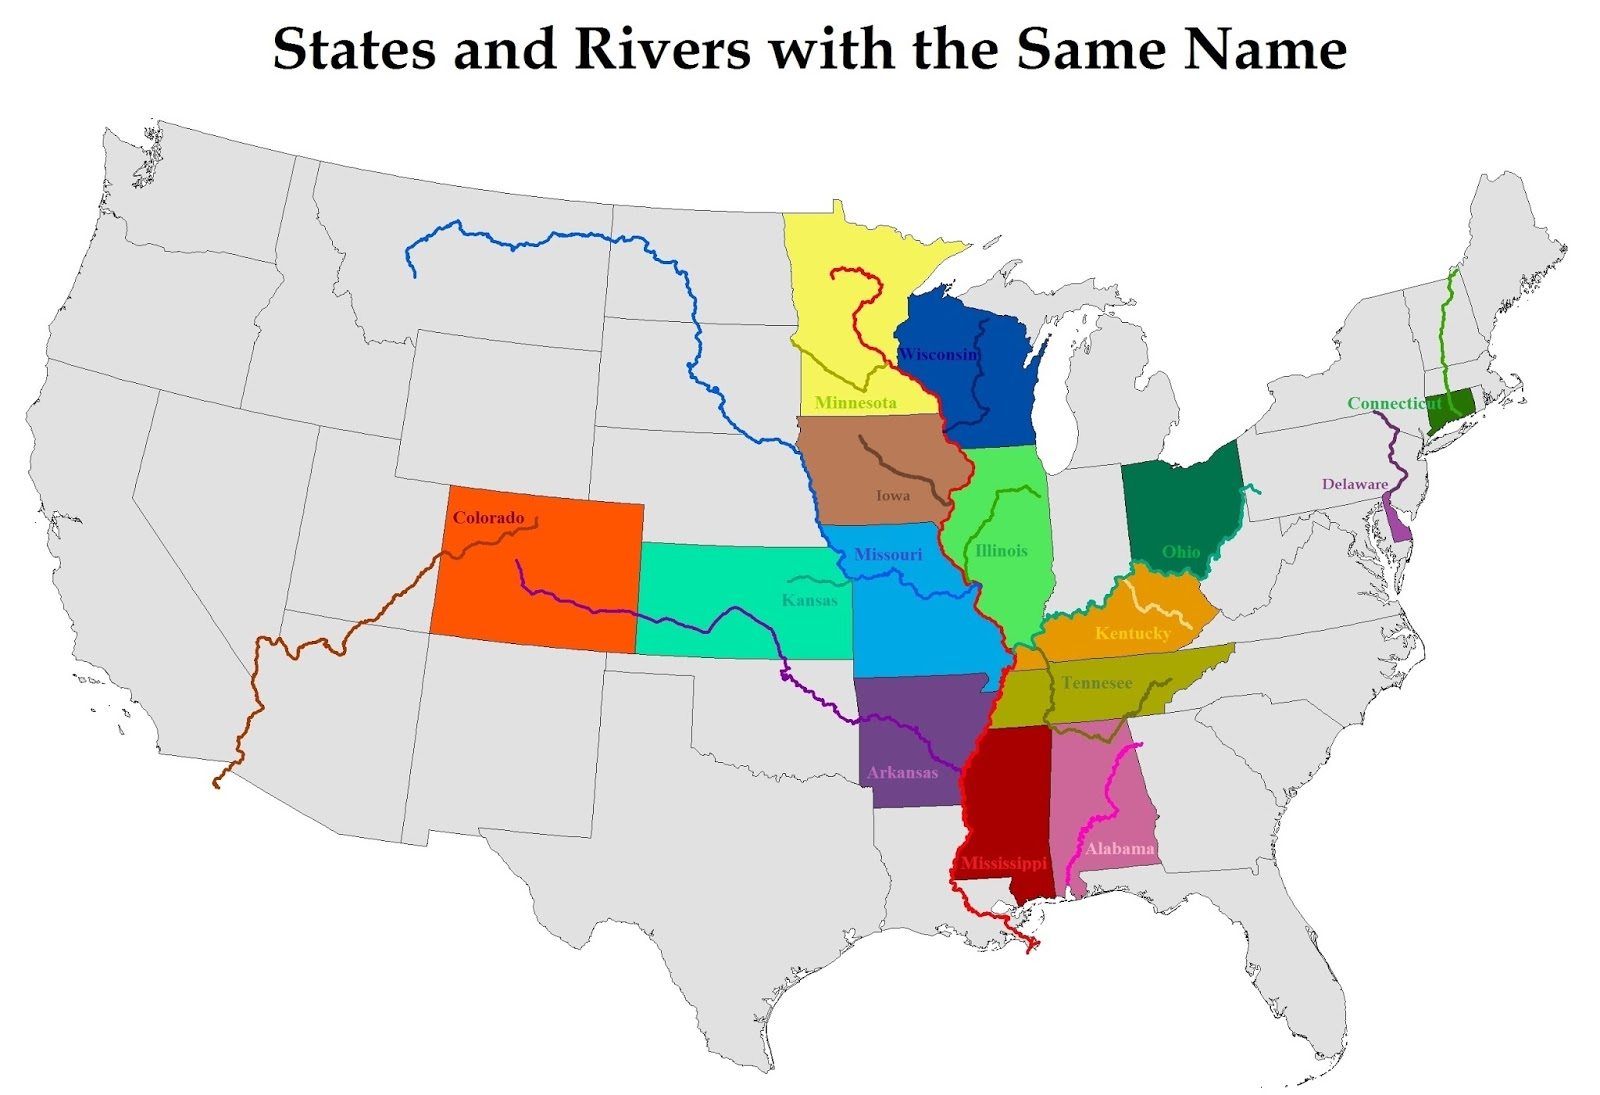 States & Rivers with the Same Name